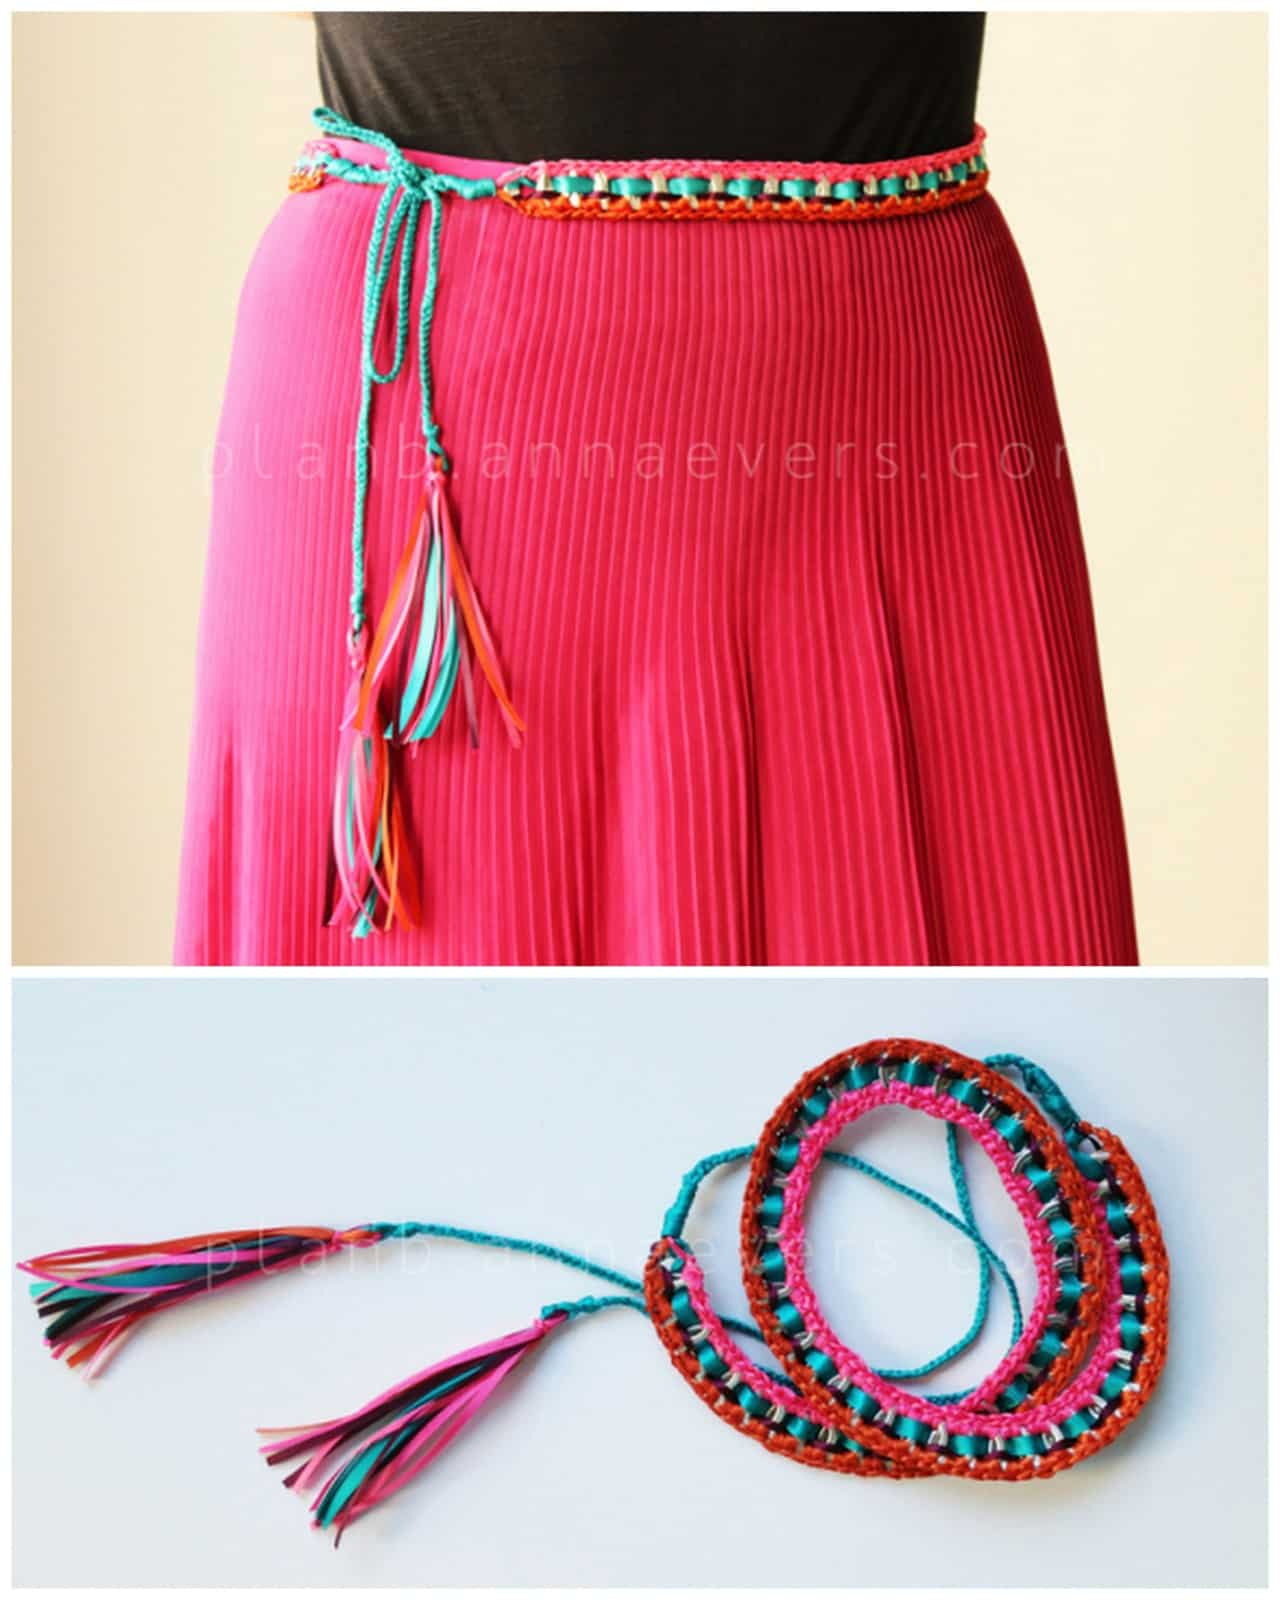 Pop tab and embroidery floss belt